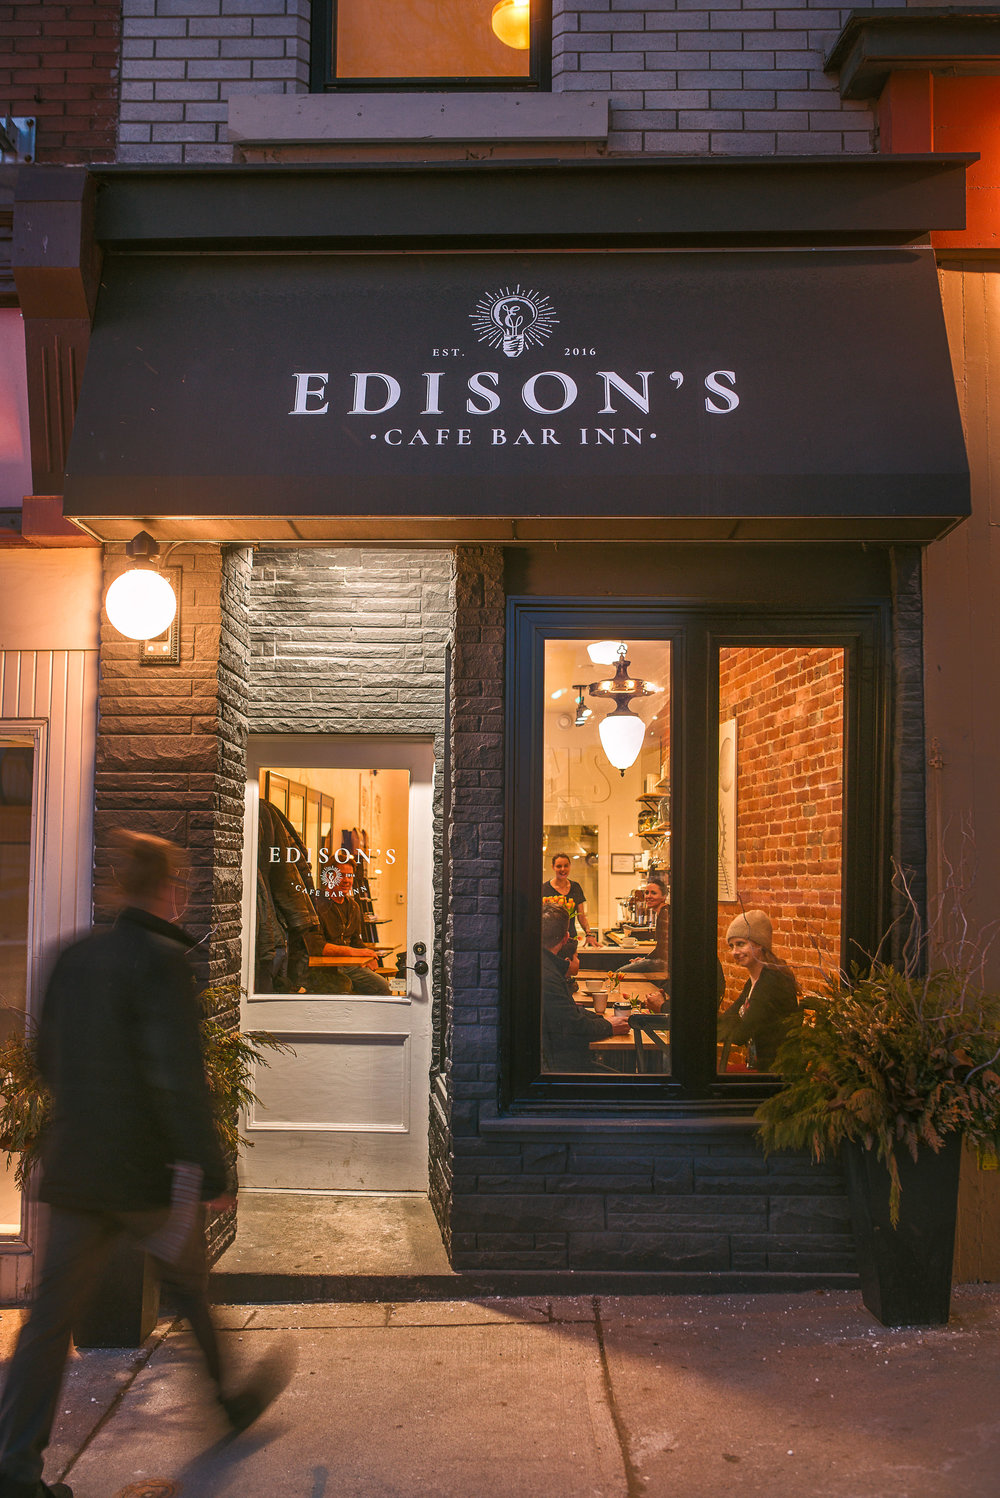 WE'D LOVE YOU TO BE OUR GUEST   EDISON'S INN, in the heart of downtown Stratford, Ontario, is a space designed to give you a small, deserved break from the daily grind. We want to inspire you by our ideas, design, music, snacks, beverages and friendship. When you leave, our hope is that you are refreshed and energized to take on whatever lies ahead with passion, strength and humour.